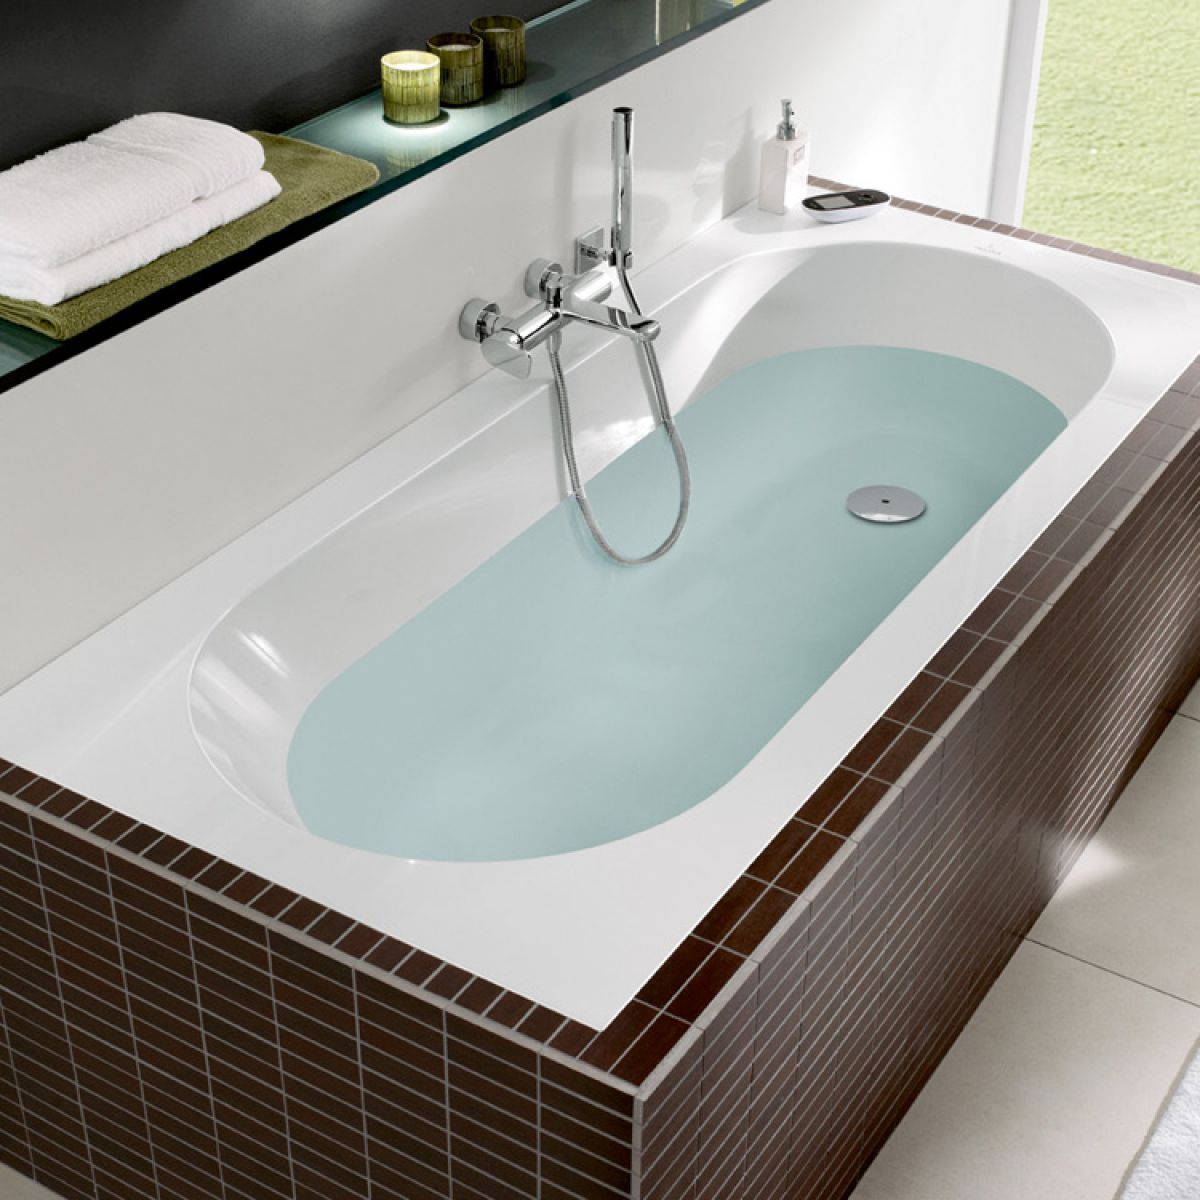 villeroy boch soho oberon rectangular bath uk bathrooms - Bathroom Designs Villeroy And Boch